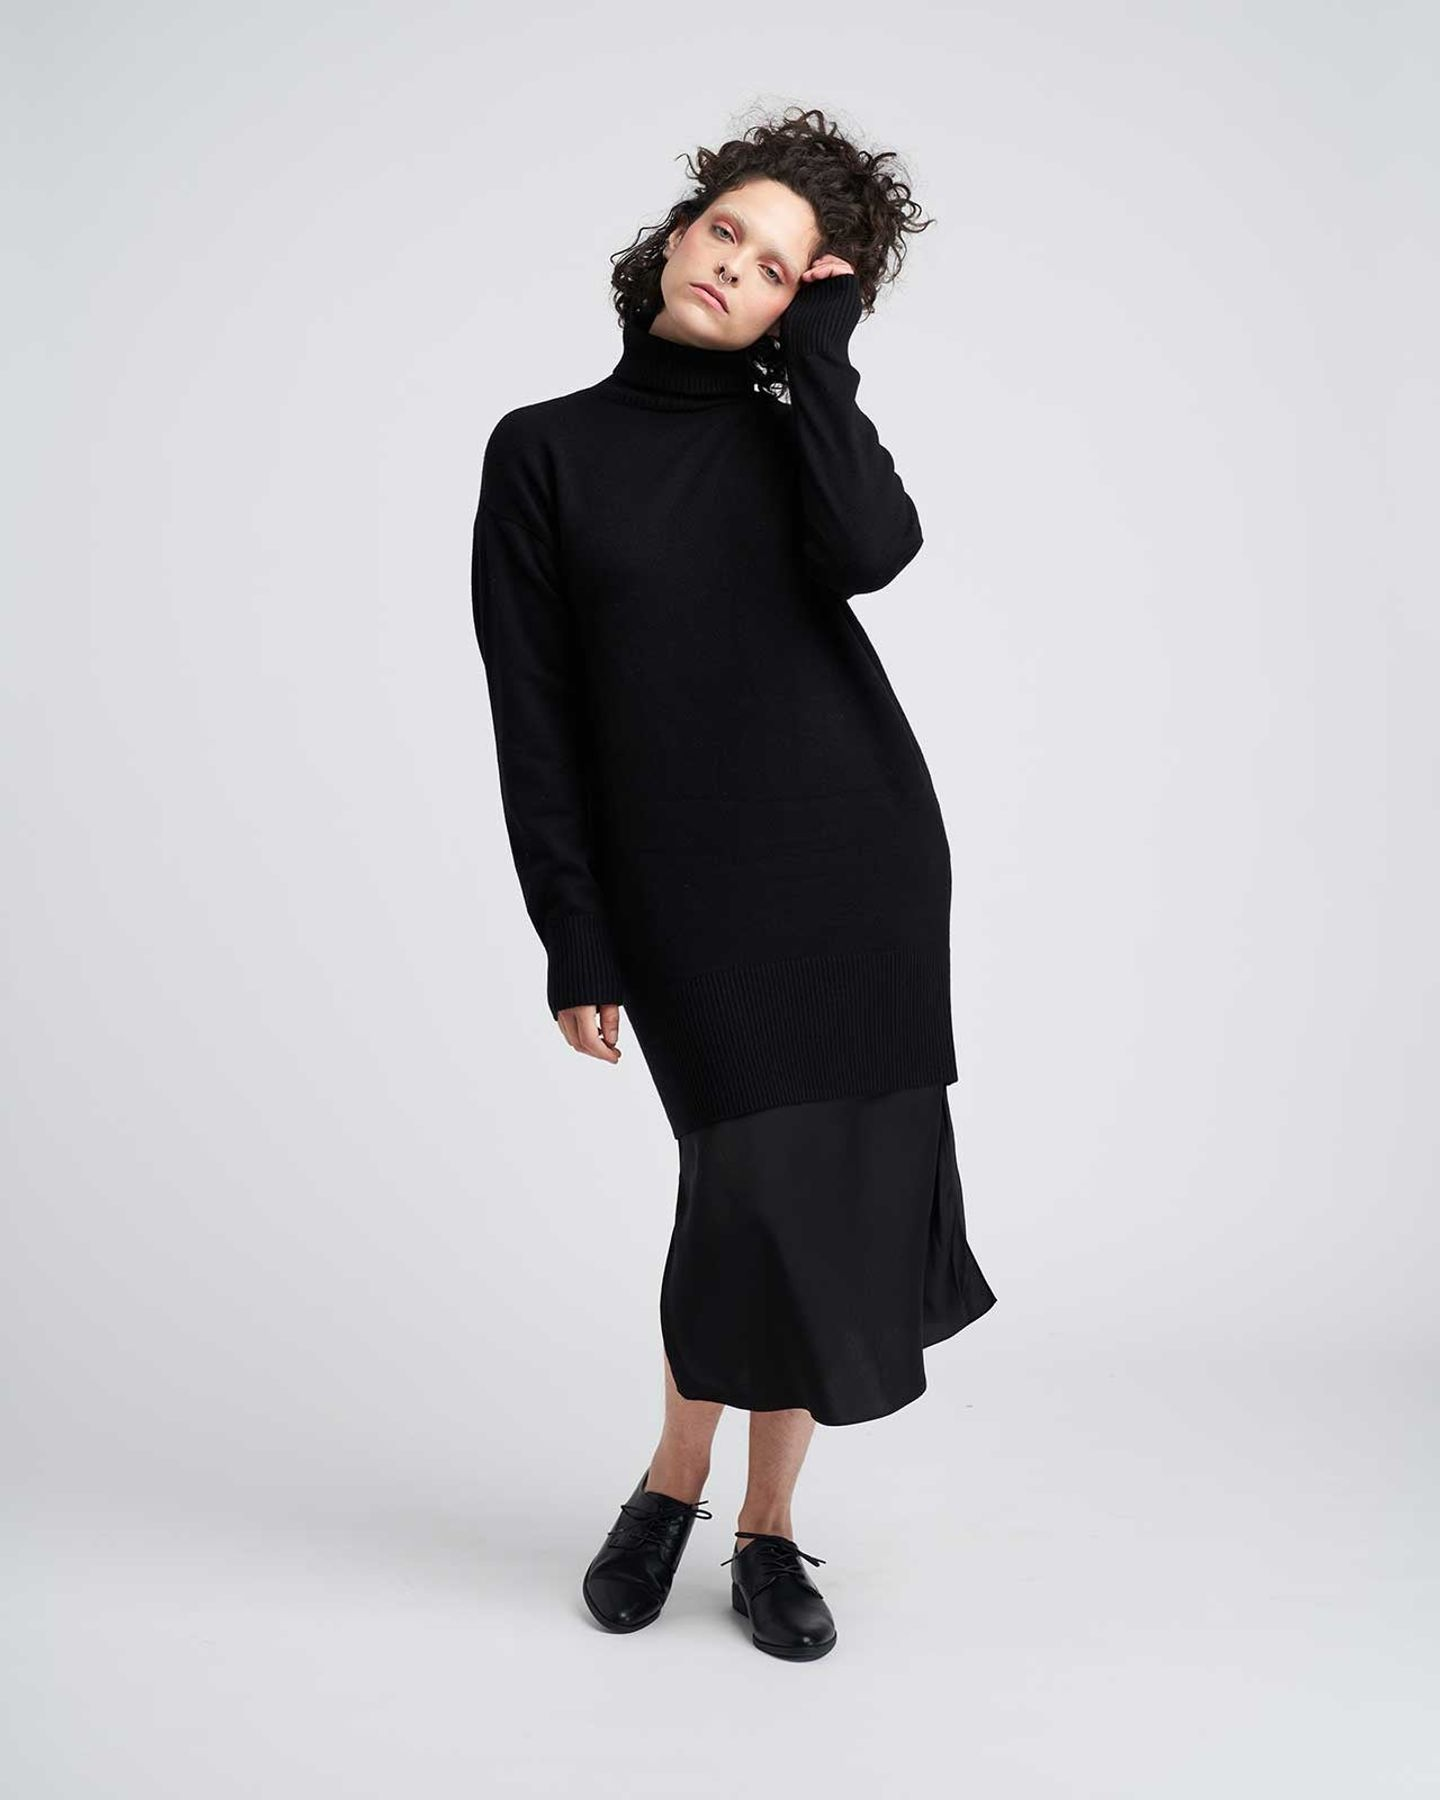 Wheaton Sweater Dress - Black - image 0